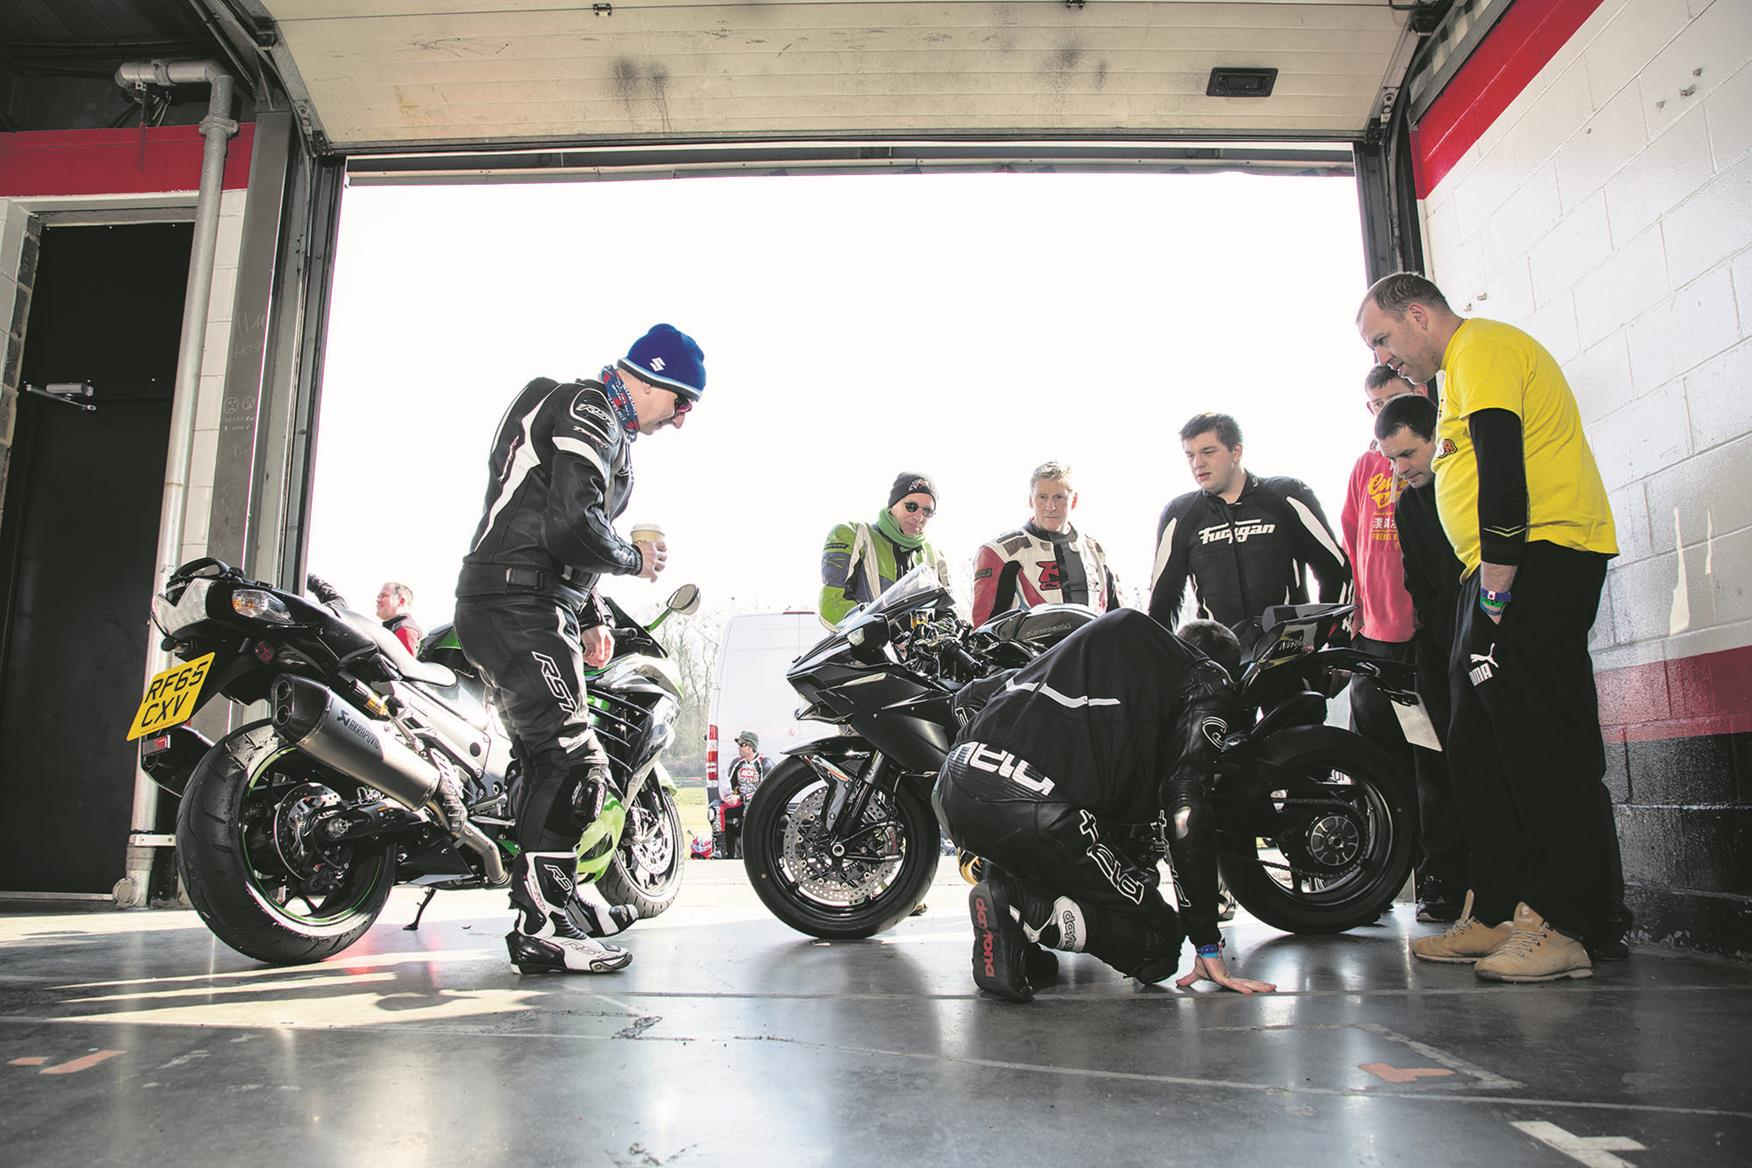 There'll be plenty of advice being thrown around at a trackday, not all good